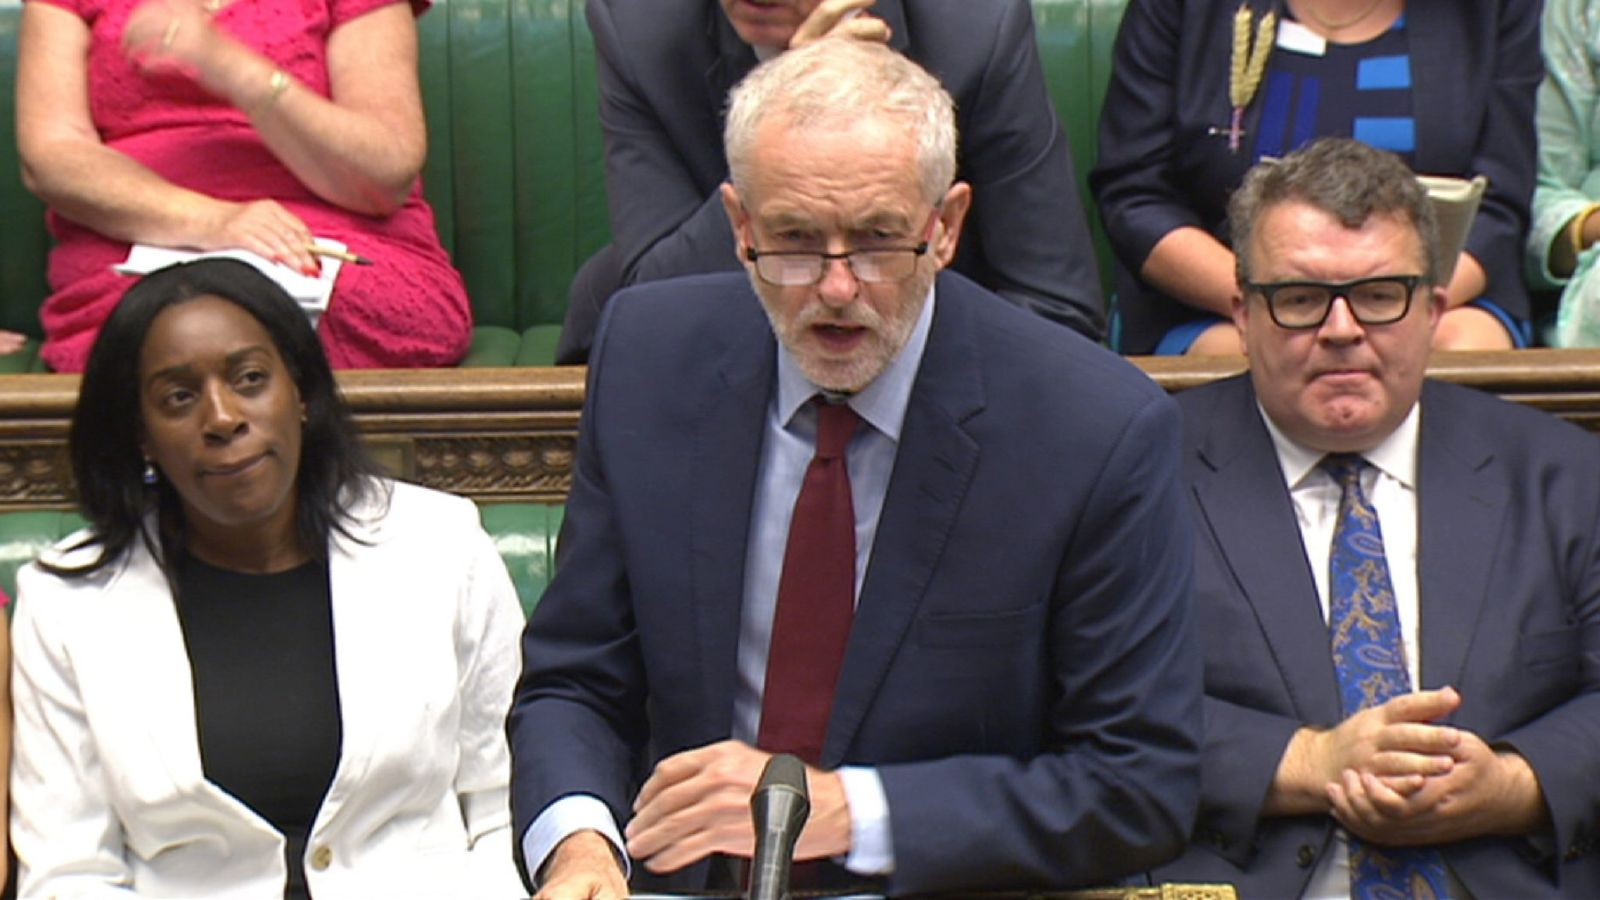 May warns against Corbyn leading Brexit